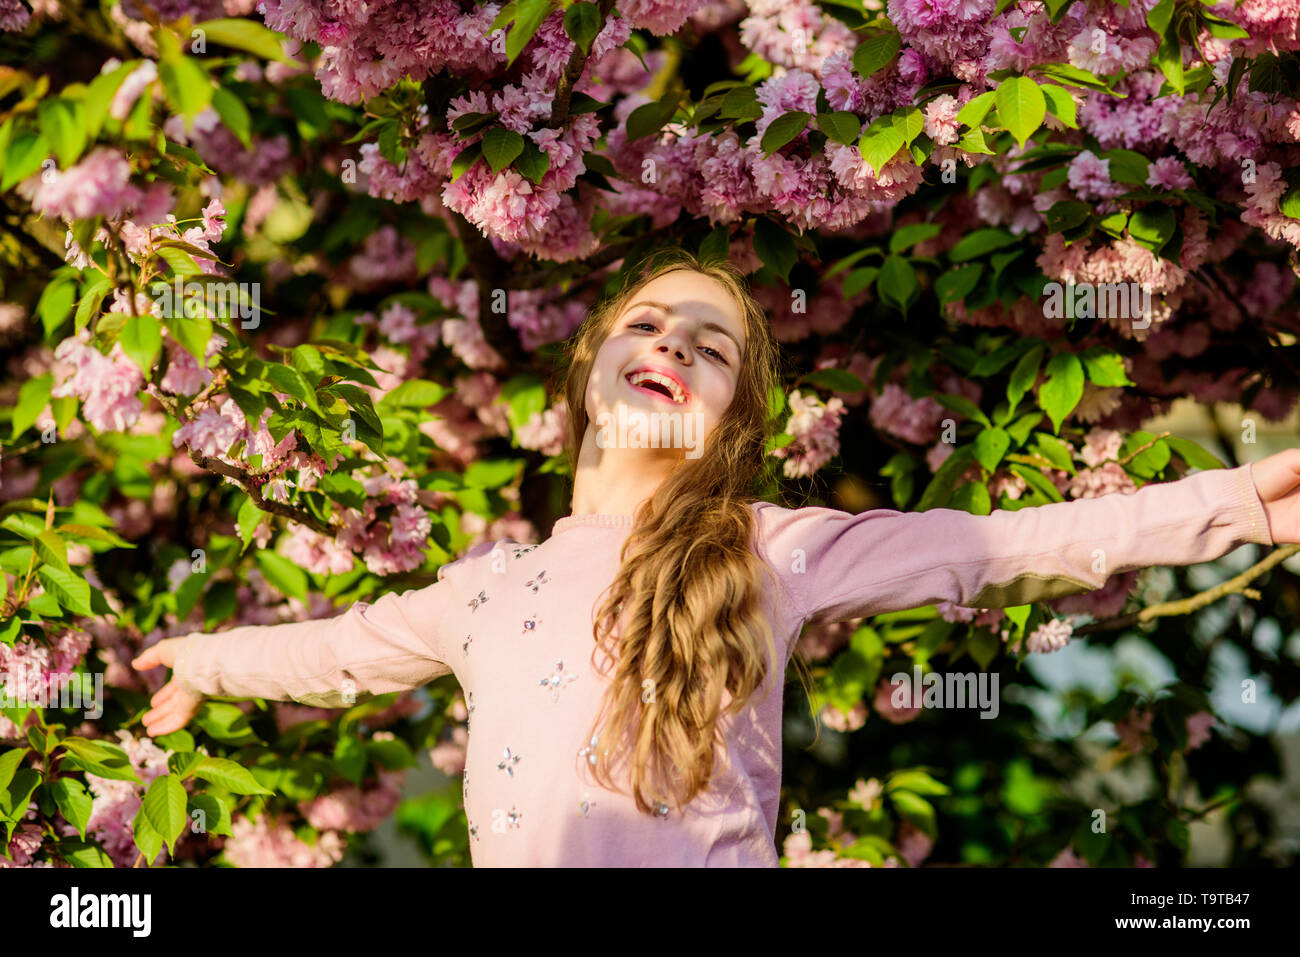 Capturing a happy moment. Natural cosmetics for skin. happy girl in cherry flower. Sakura tree blooming. small girl child in spring flower bloom. summ - Stock Image